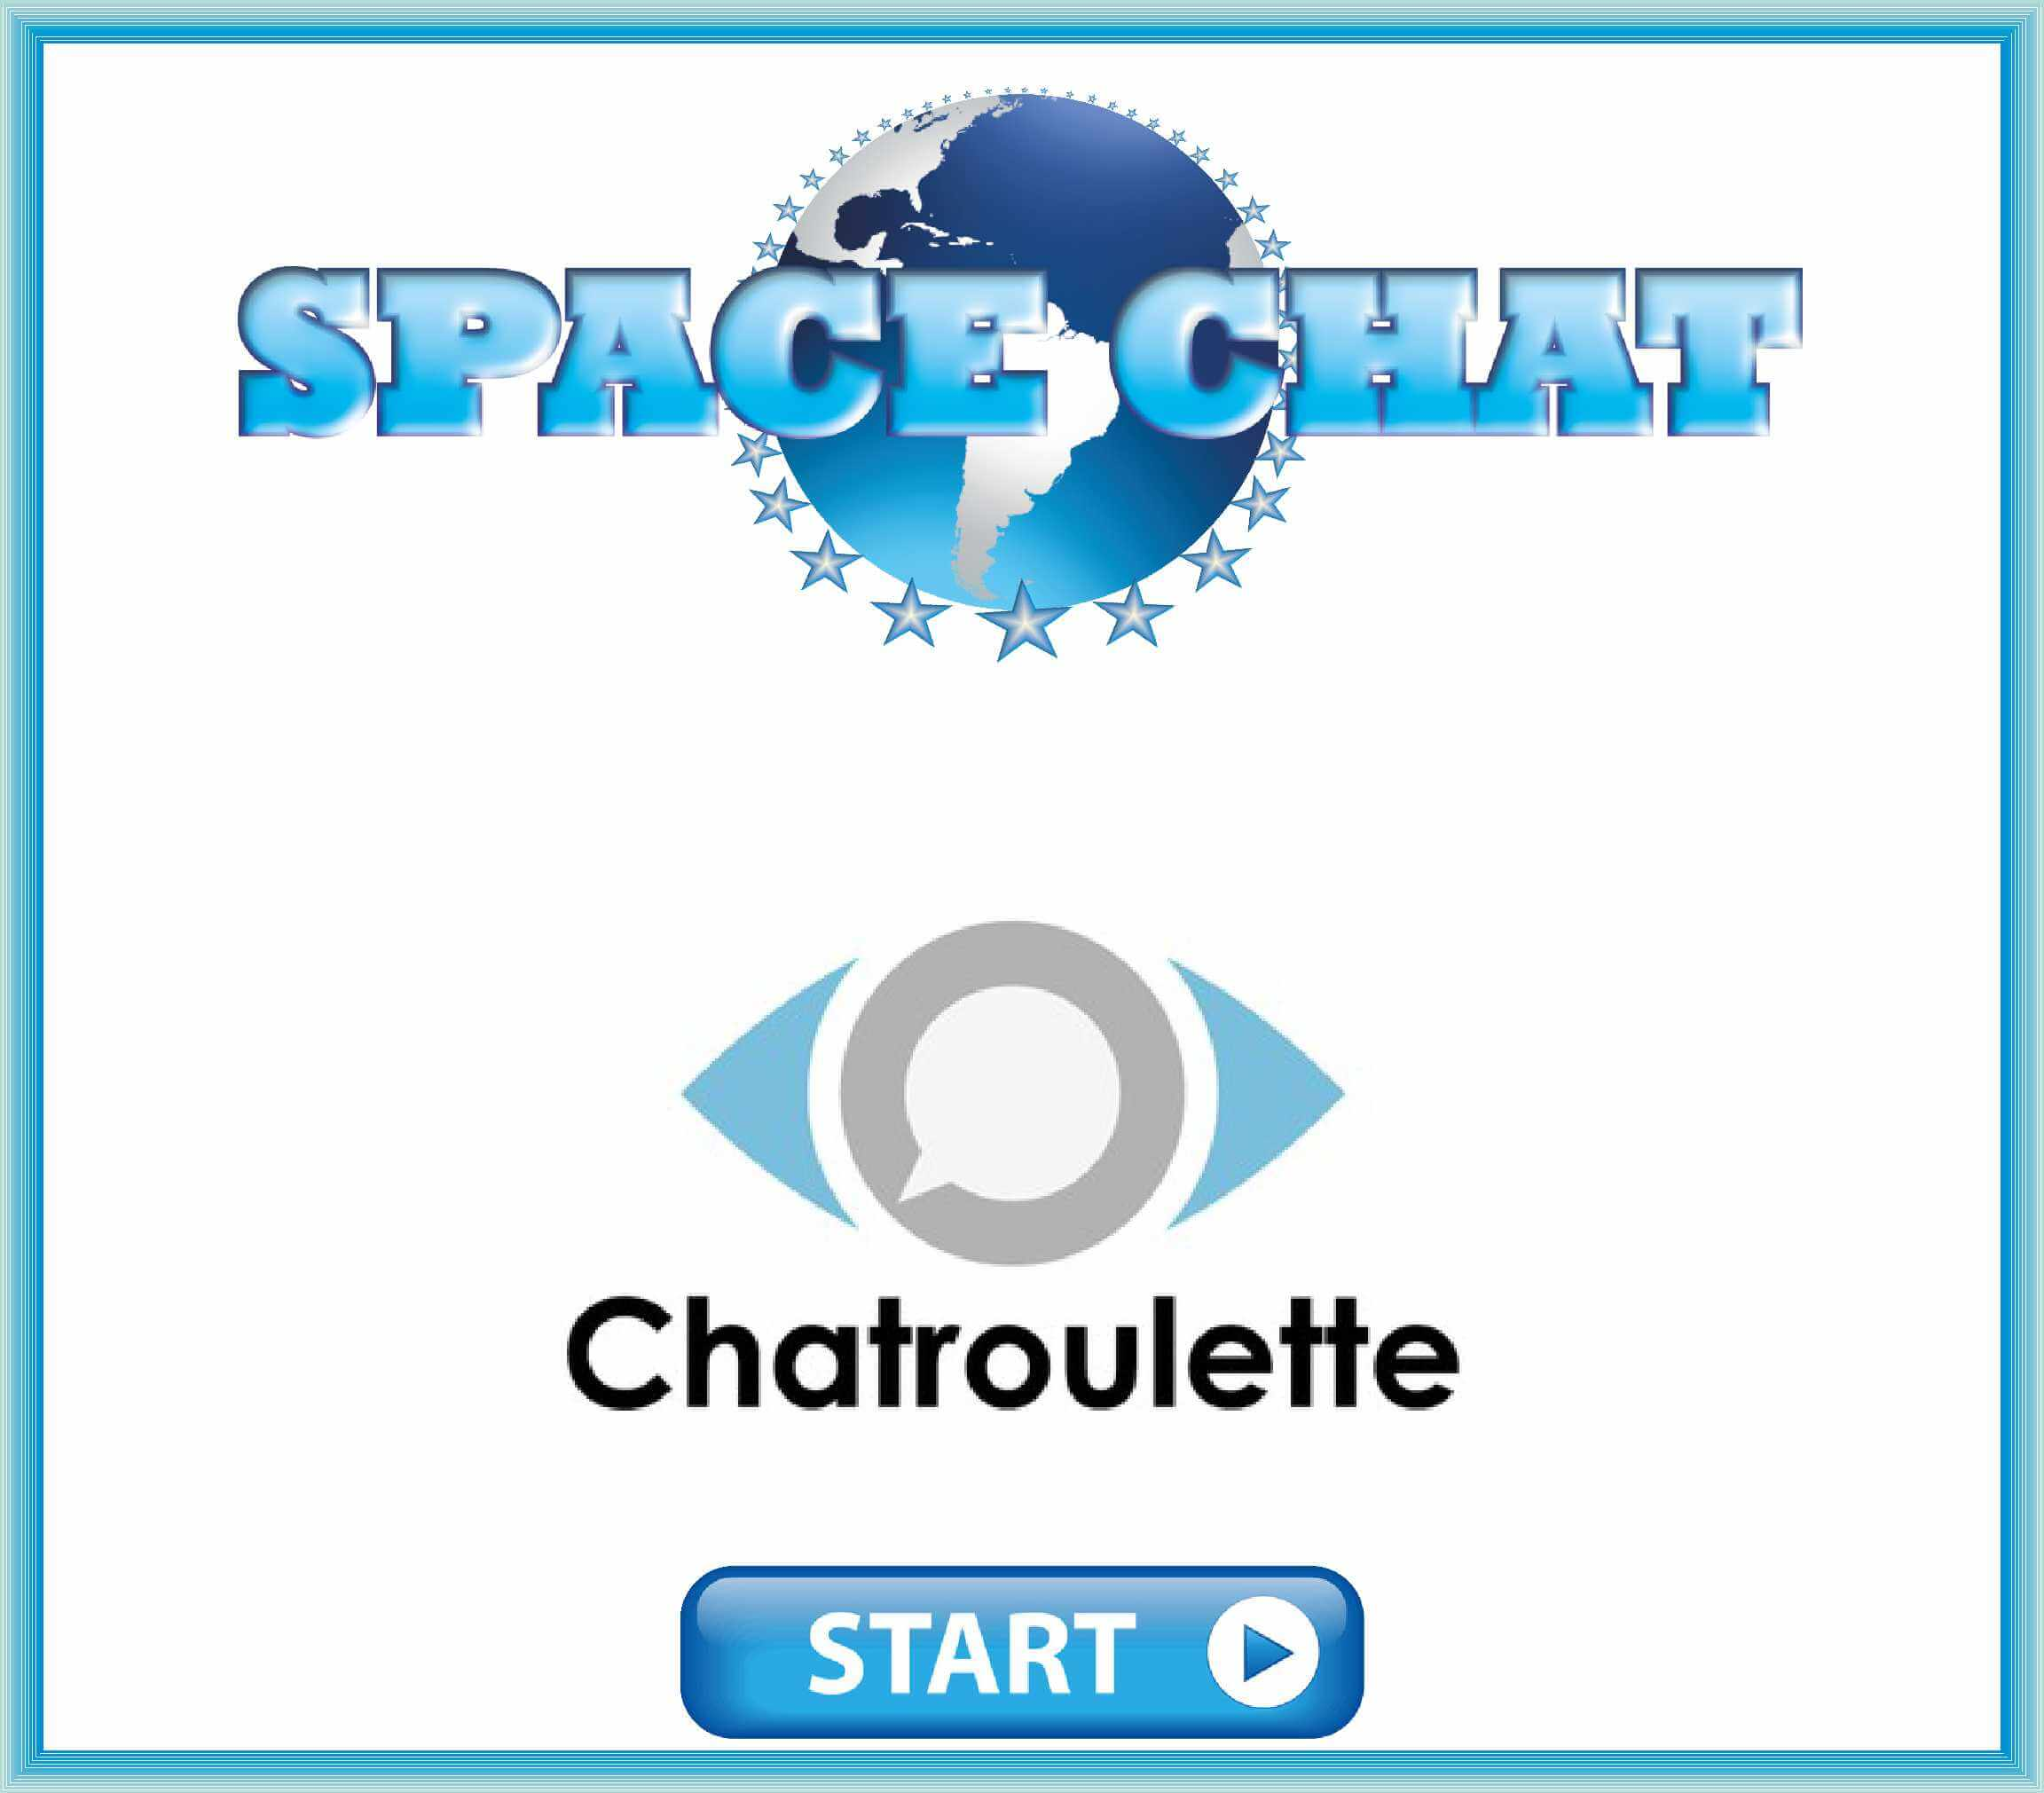 chatroulette free talk with strangers